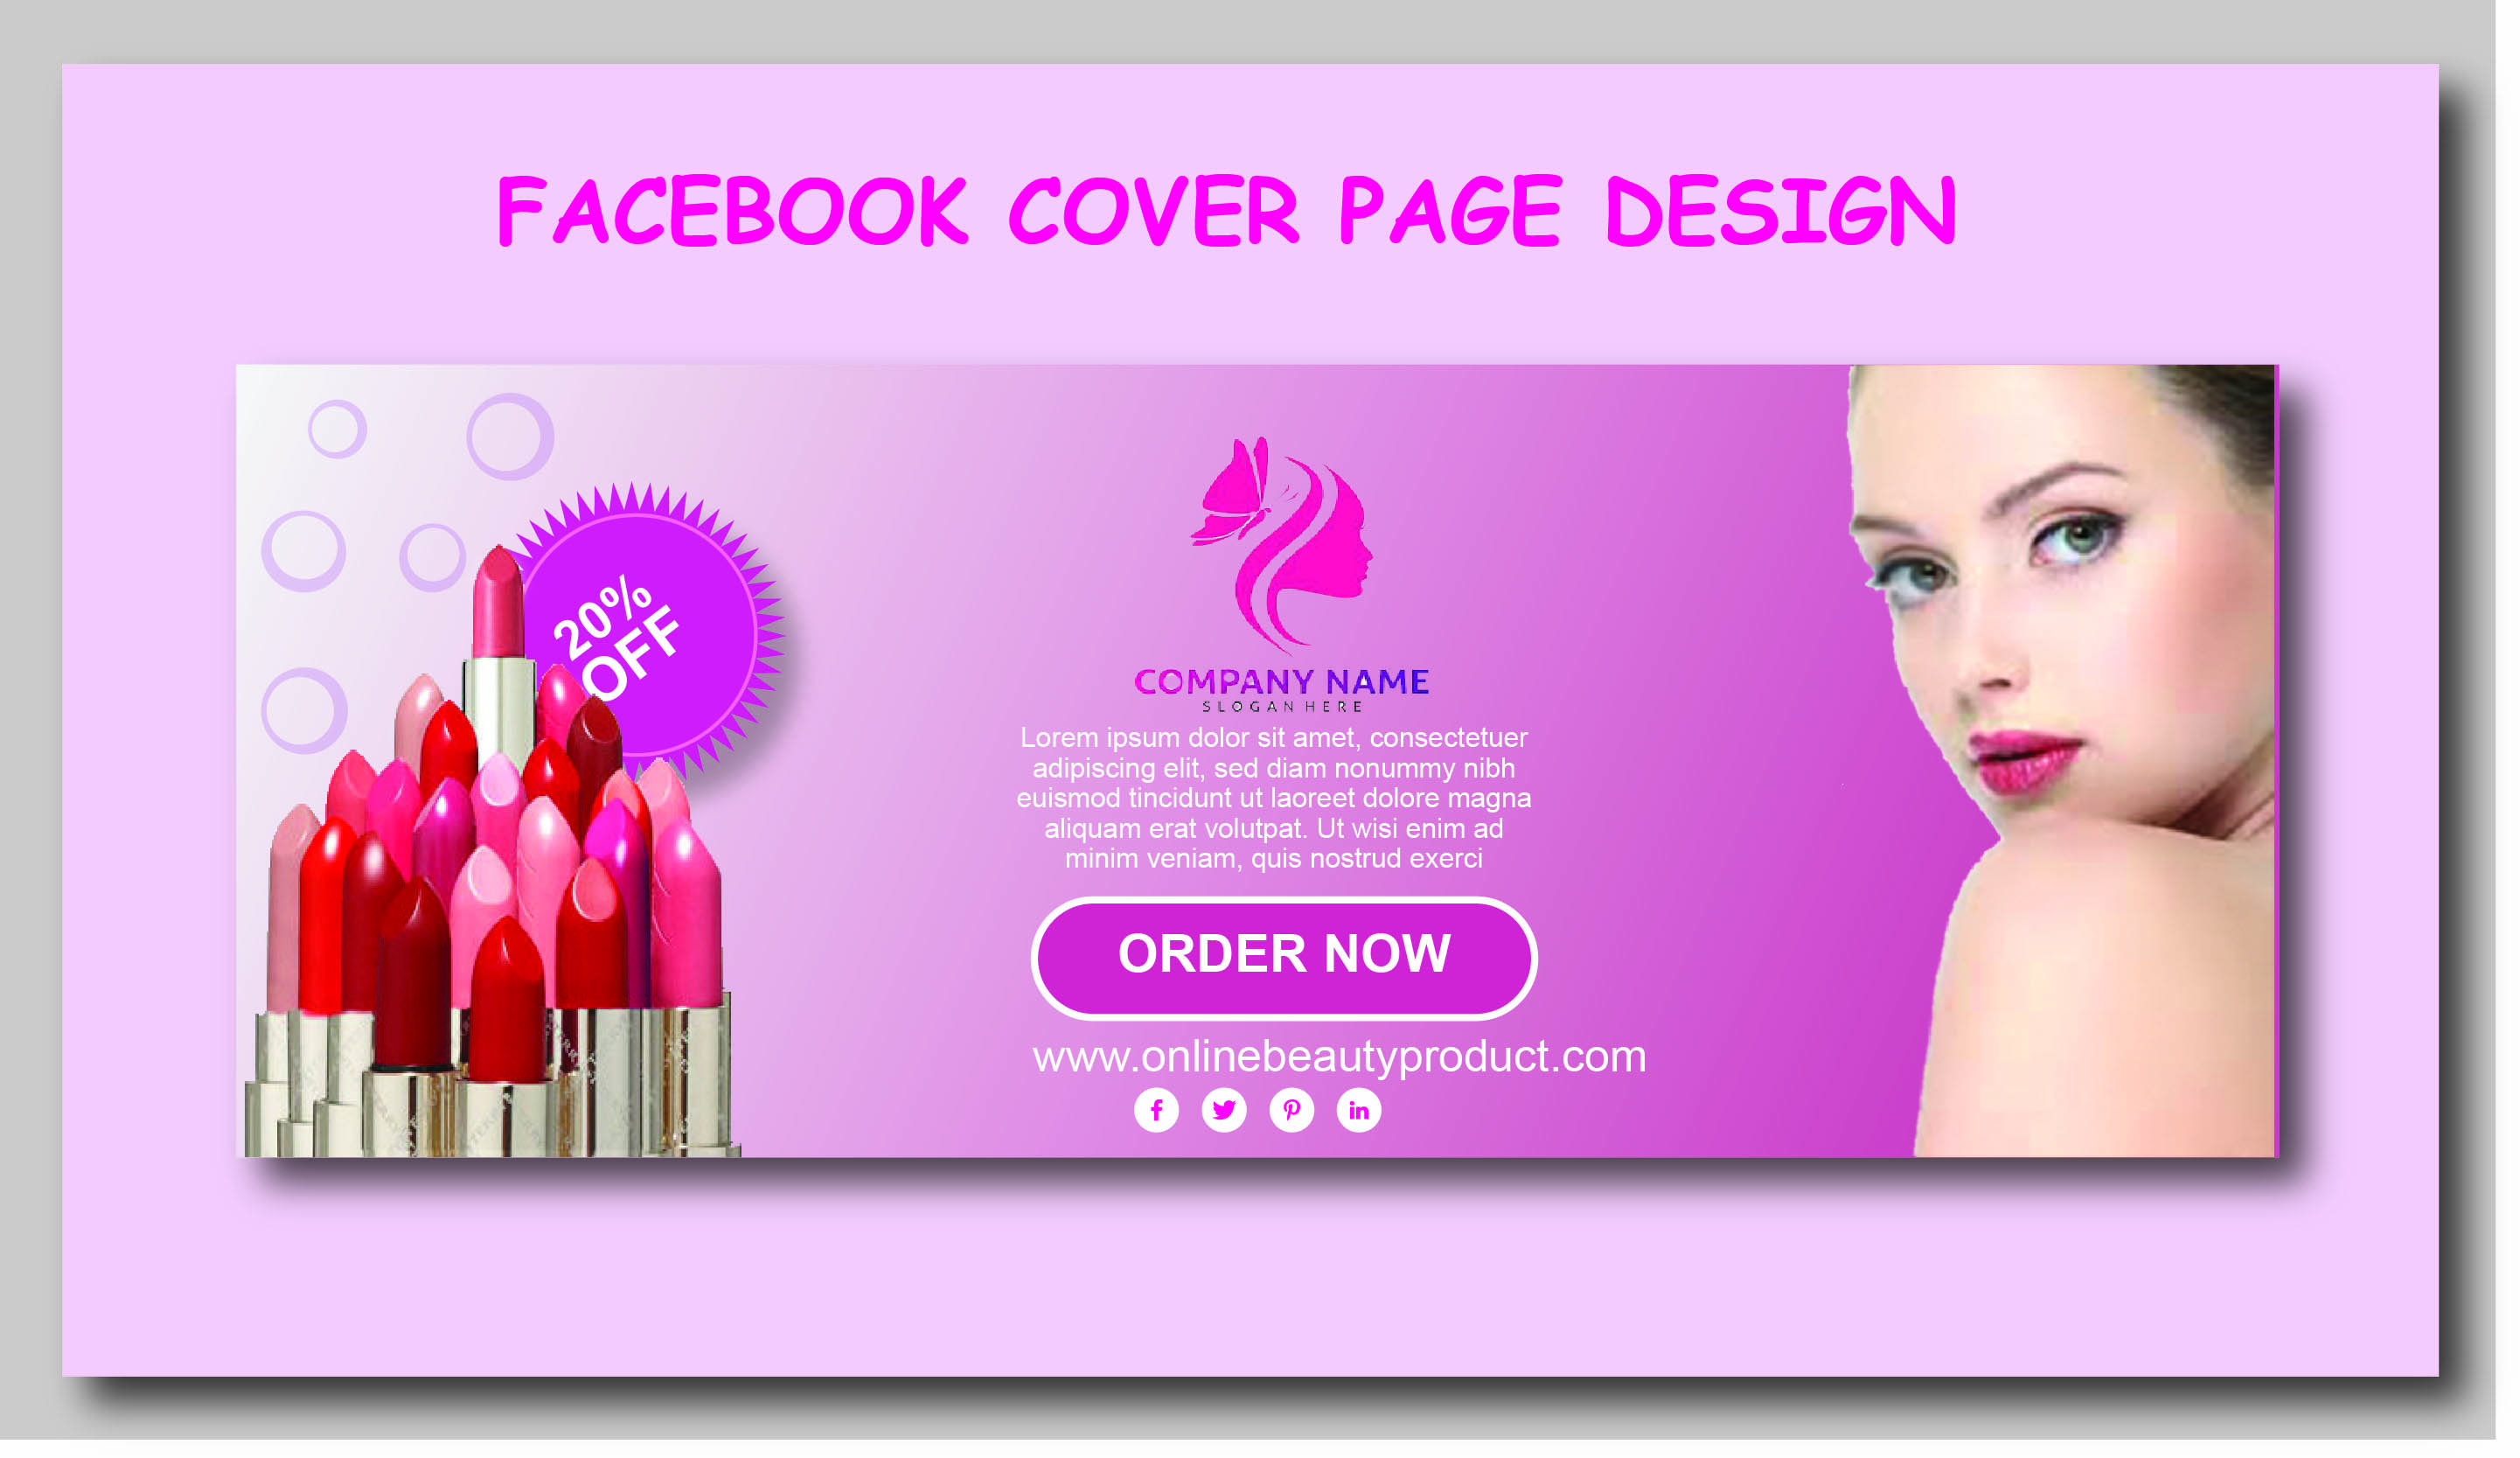 I will create professional facebook cover page design